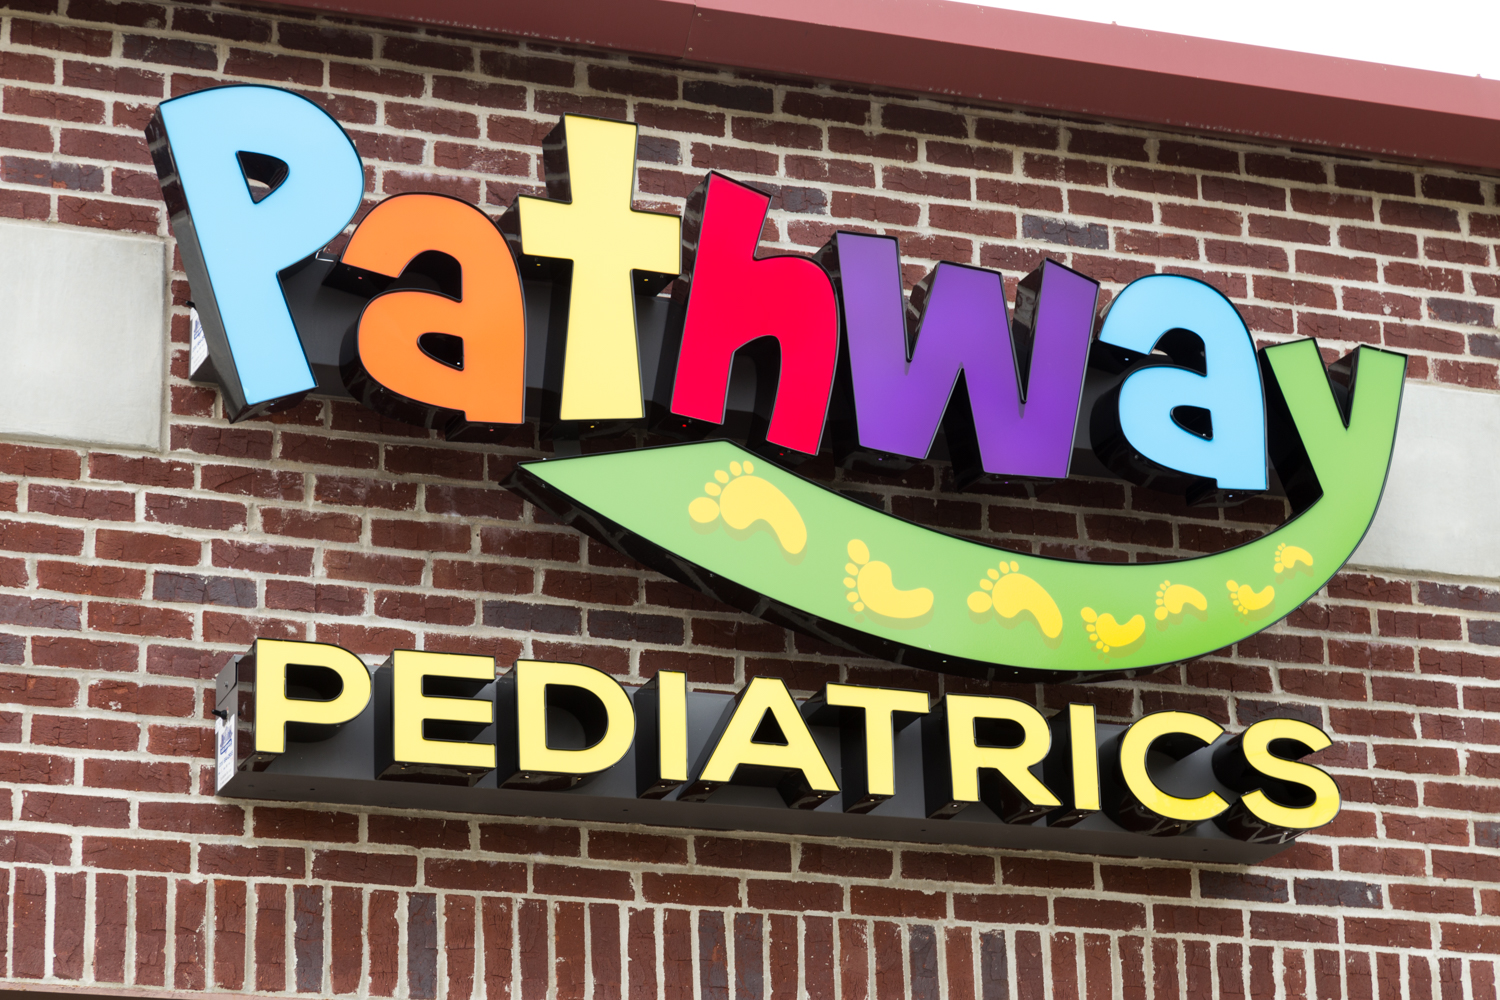 Pathway Pediatrics - Birmingham AL Commercial Photography0584.jpg